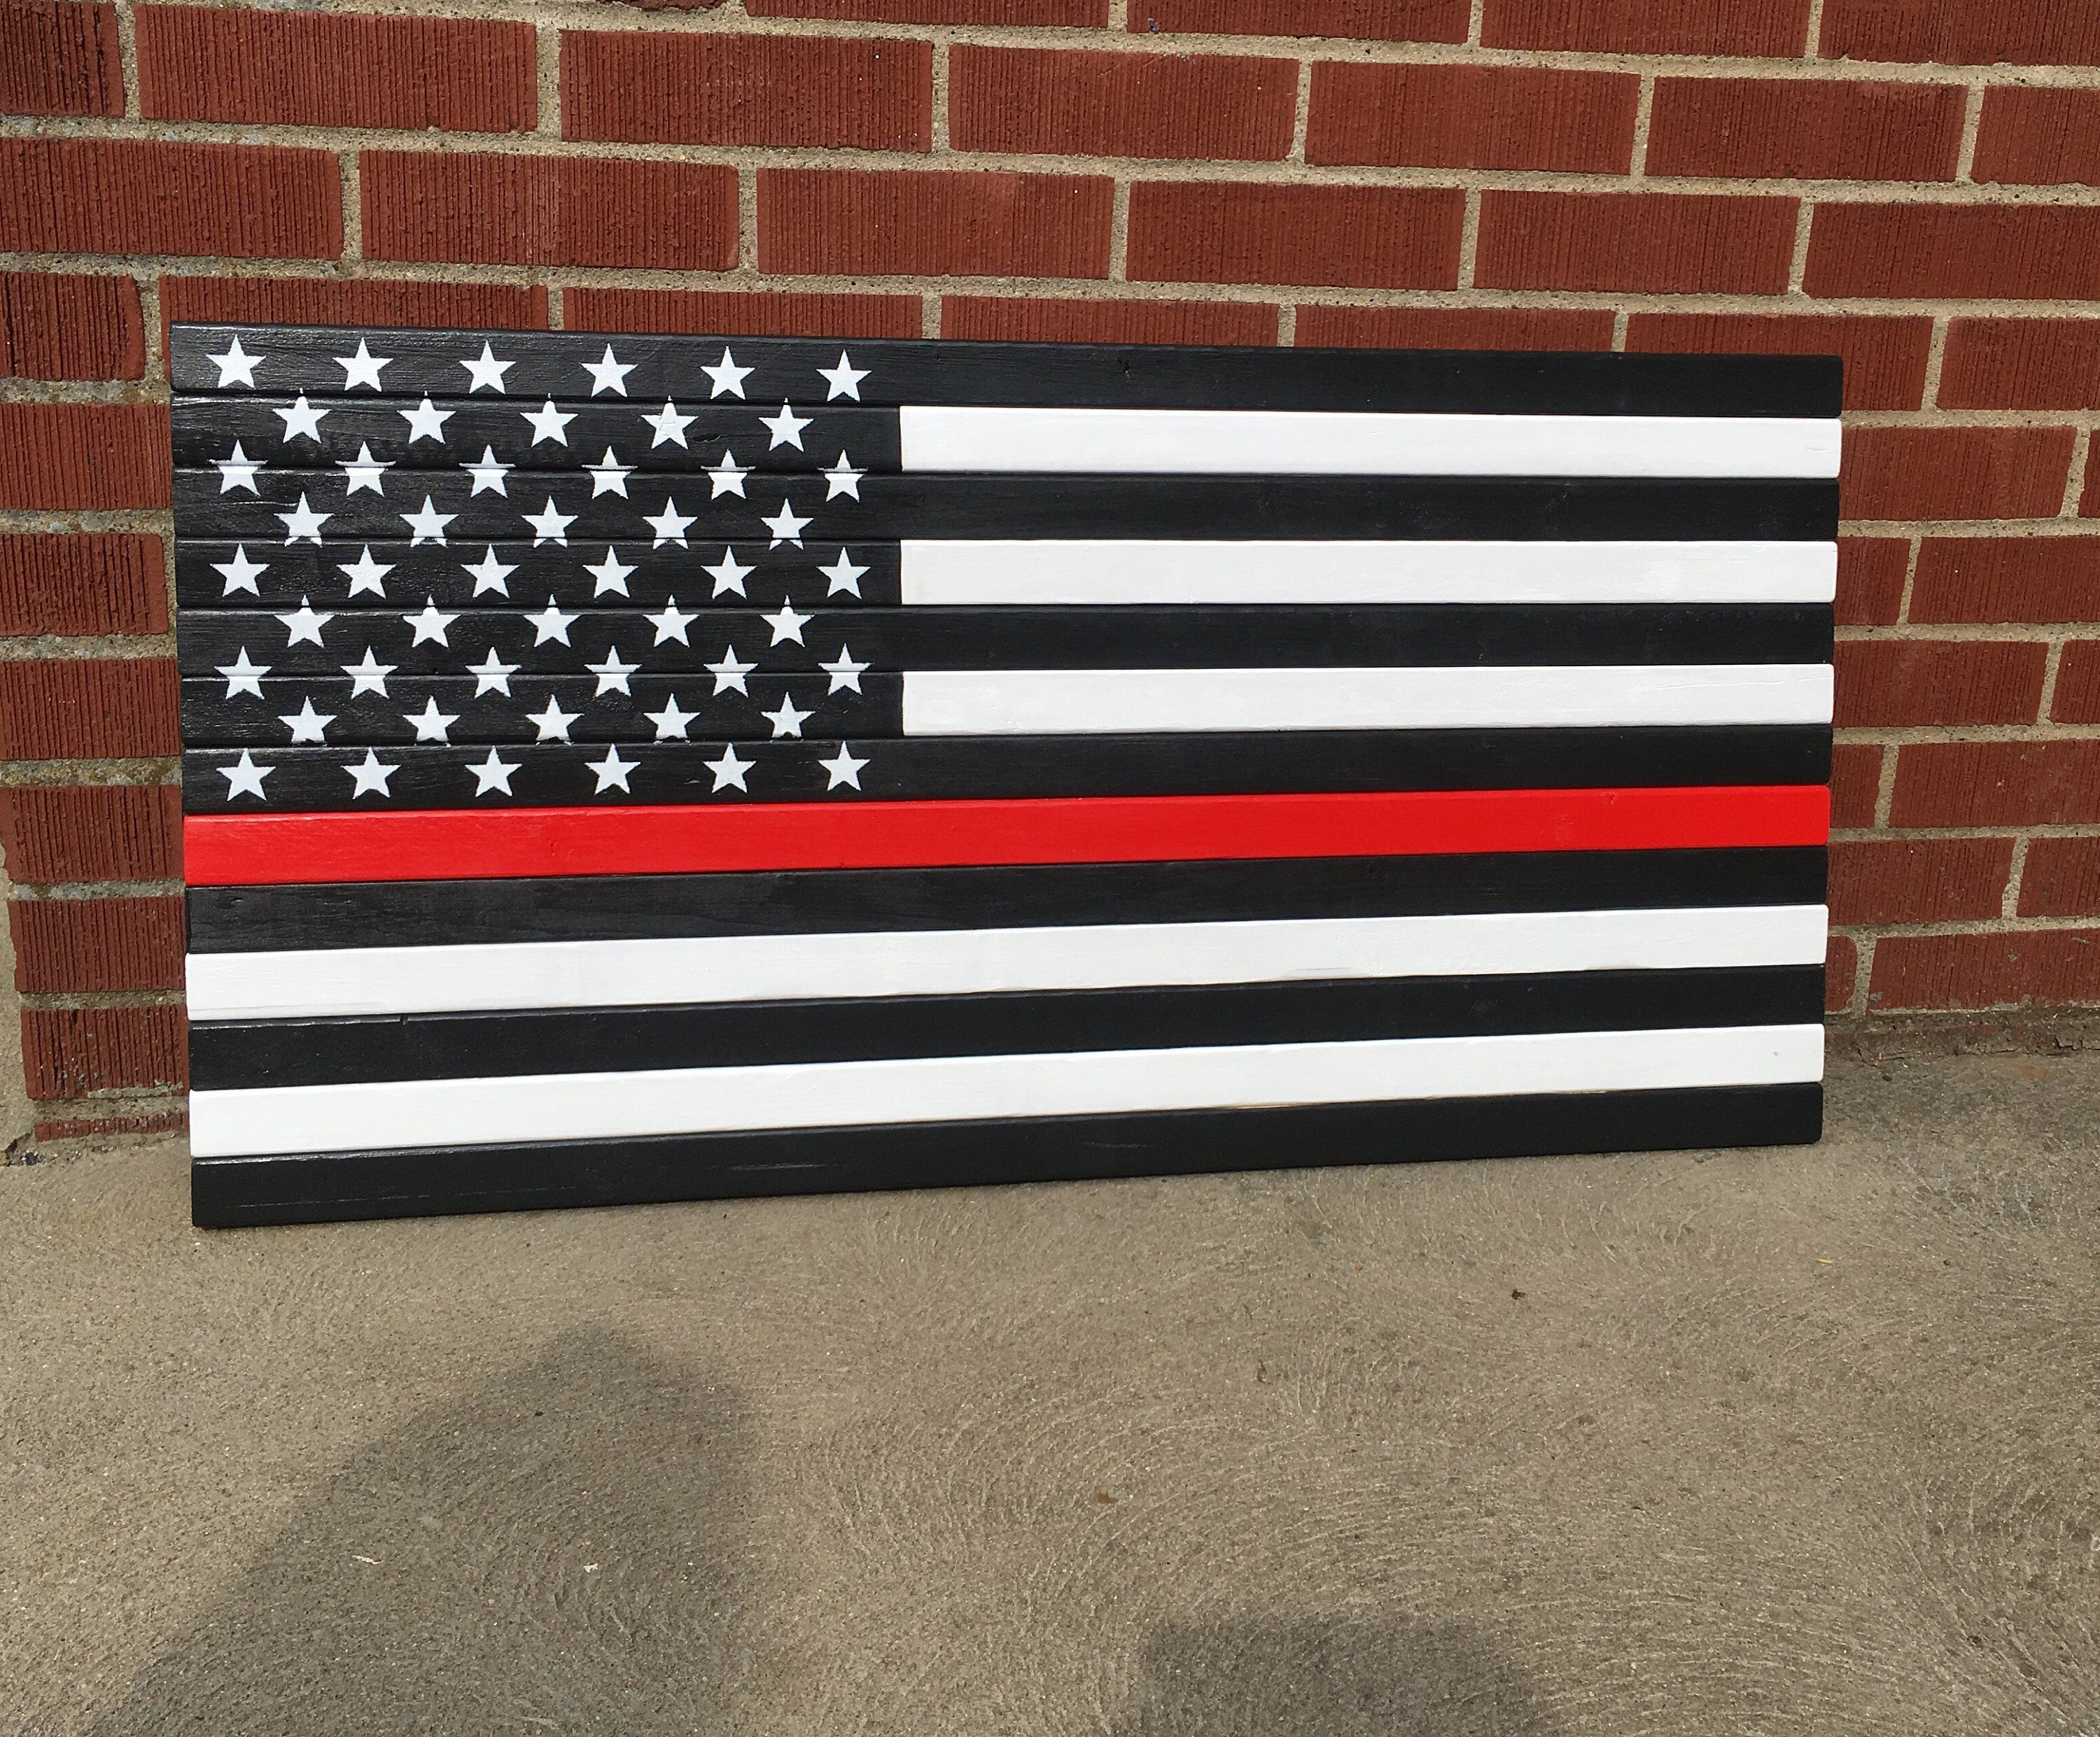 Thin Red Line Flags Thin Red Line Fire Fighter Inside Flag Outside Flag Wooden Flag Painted Flag Wooden Flag Wood Flag Thin Red Line Flag